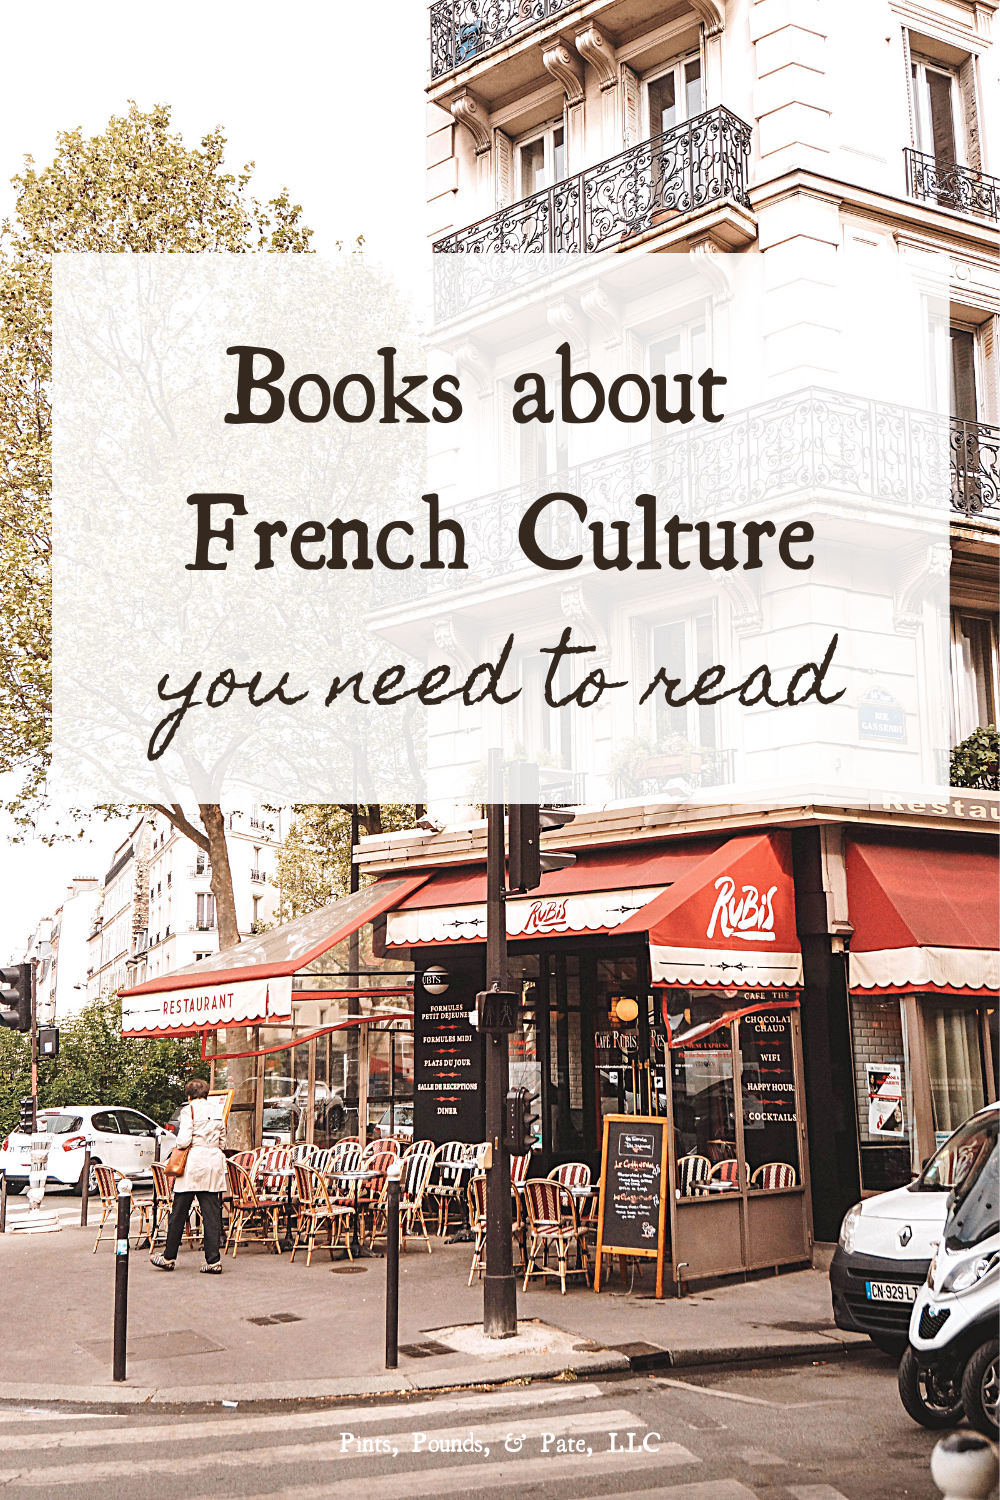 Books about French Culture